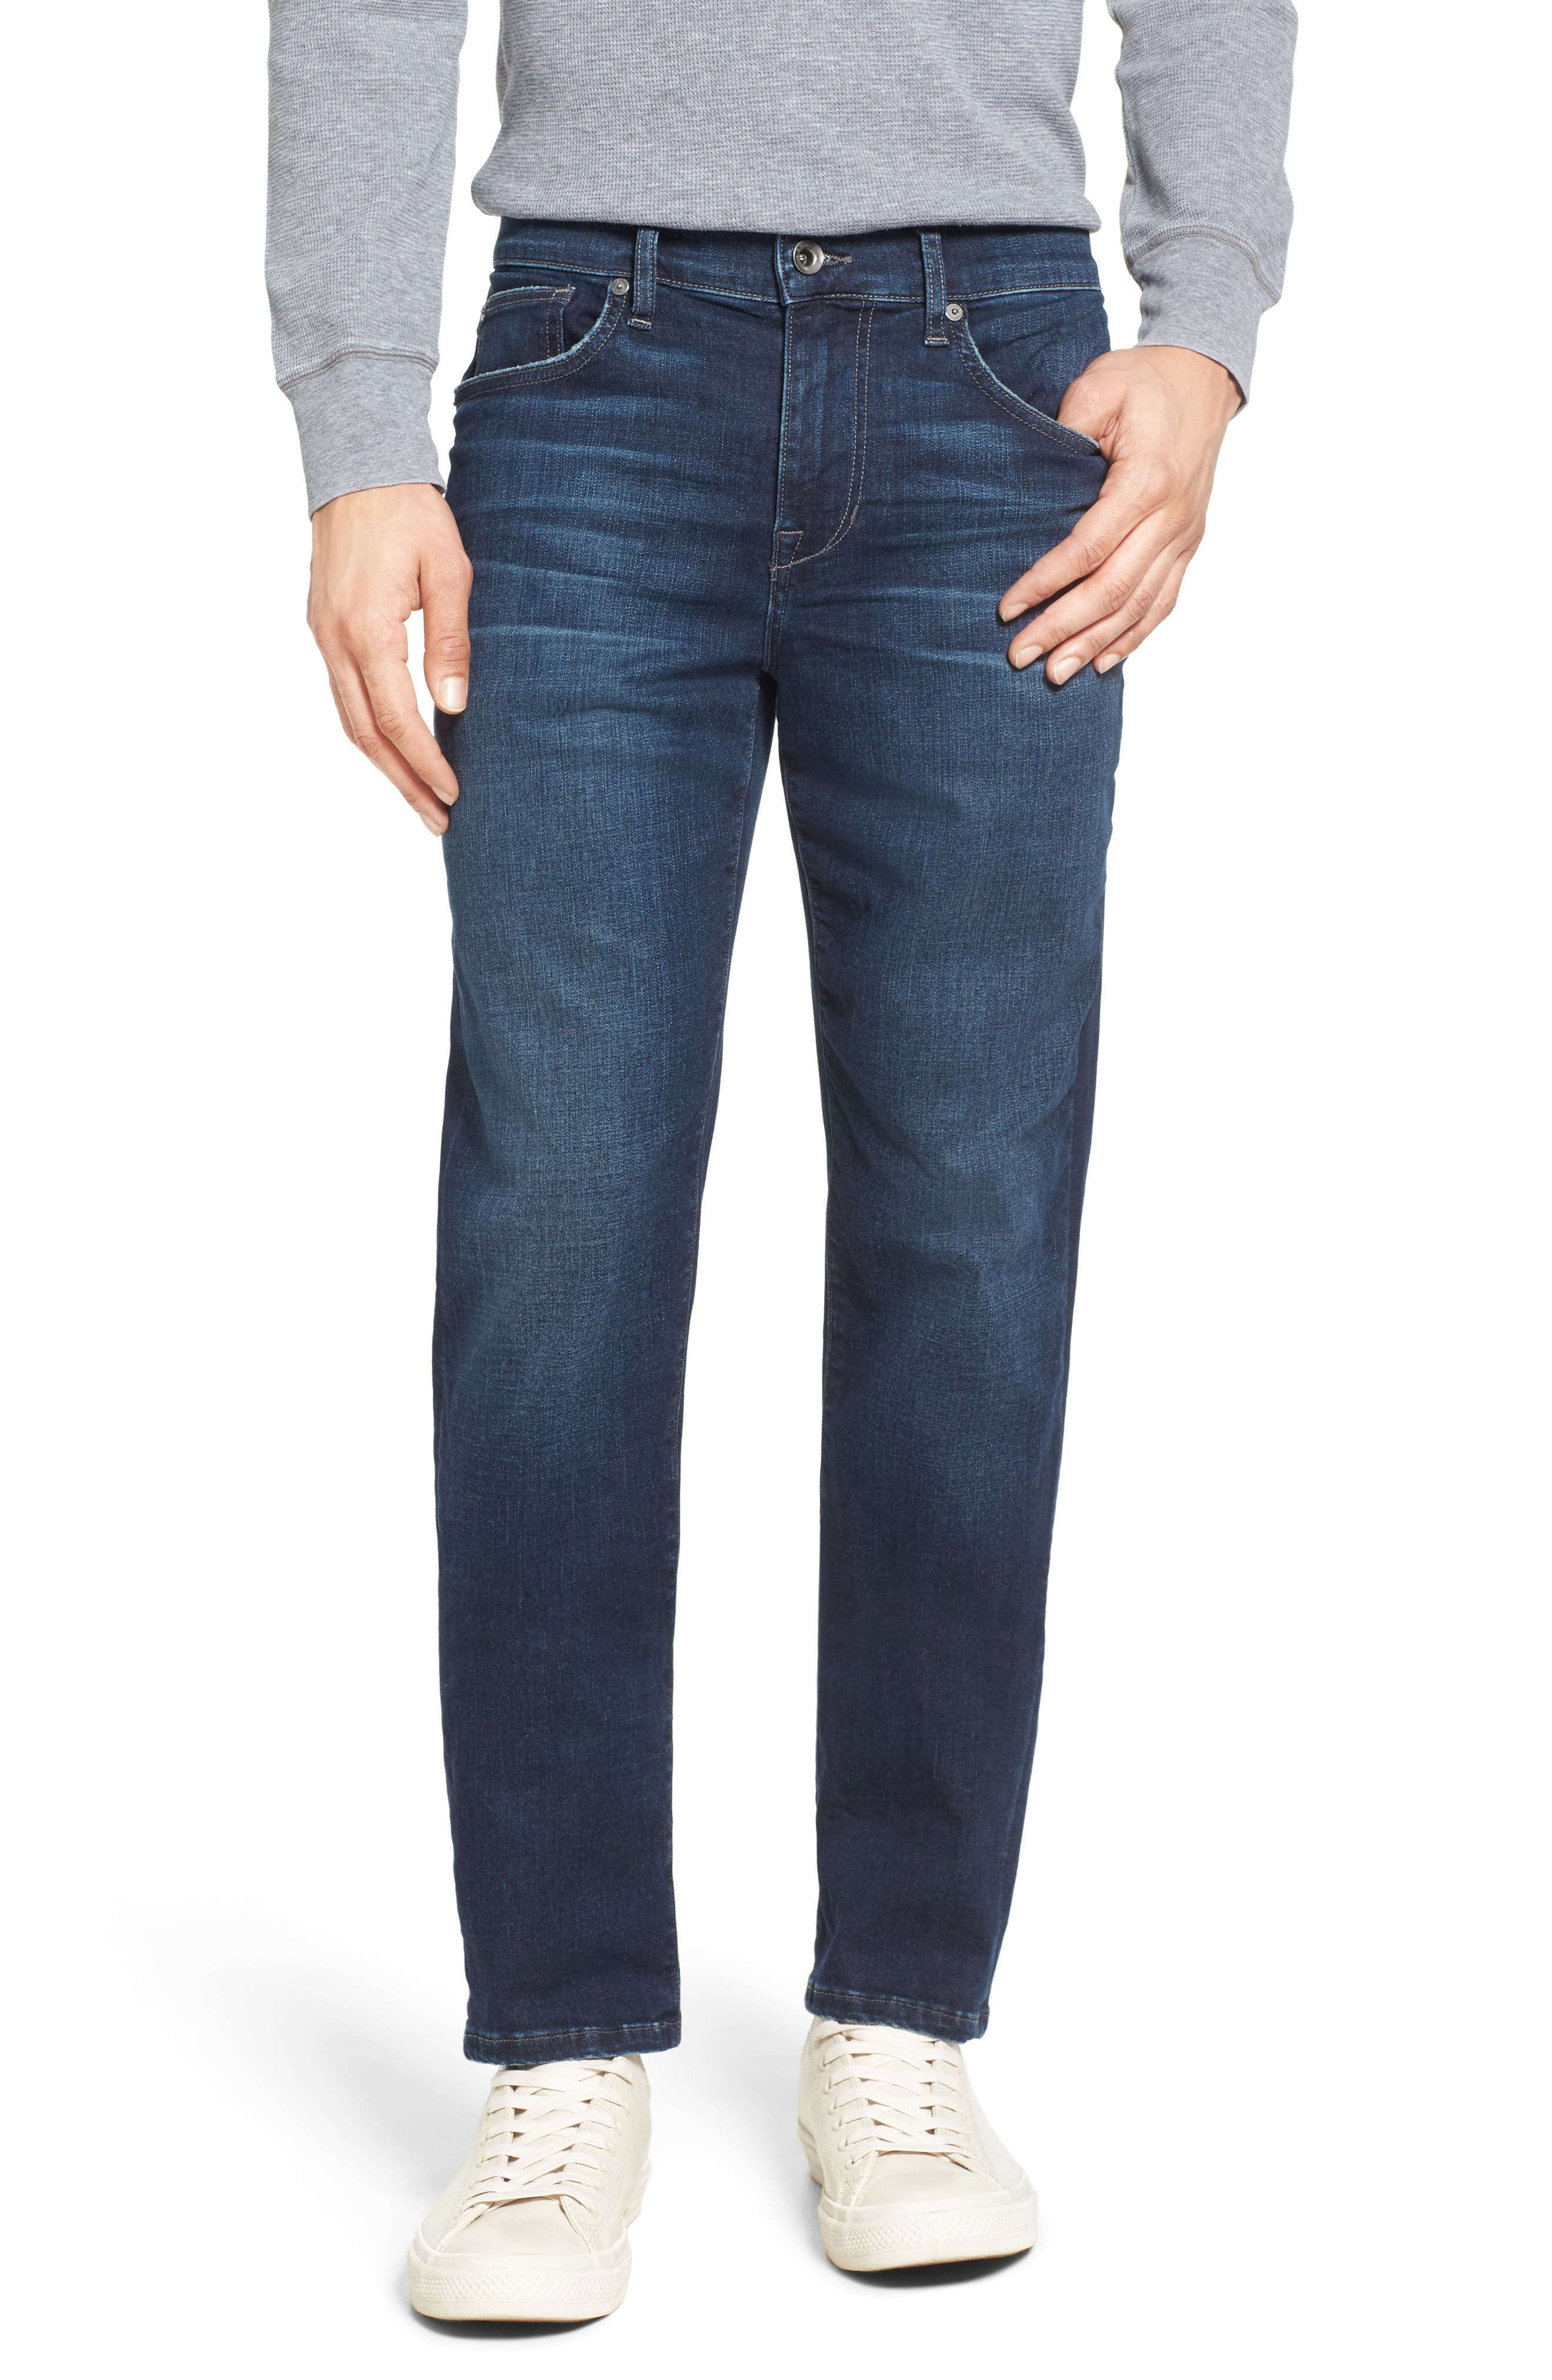 Kinetic Slim Fit Jeans,                             Main thumbnail 1, color,                             400